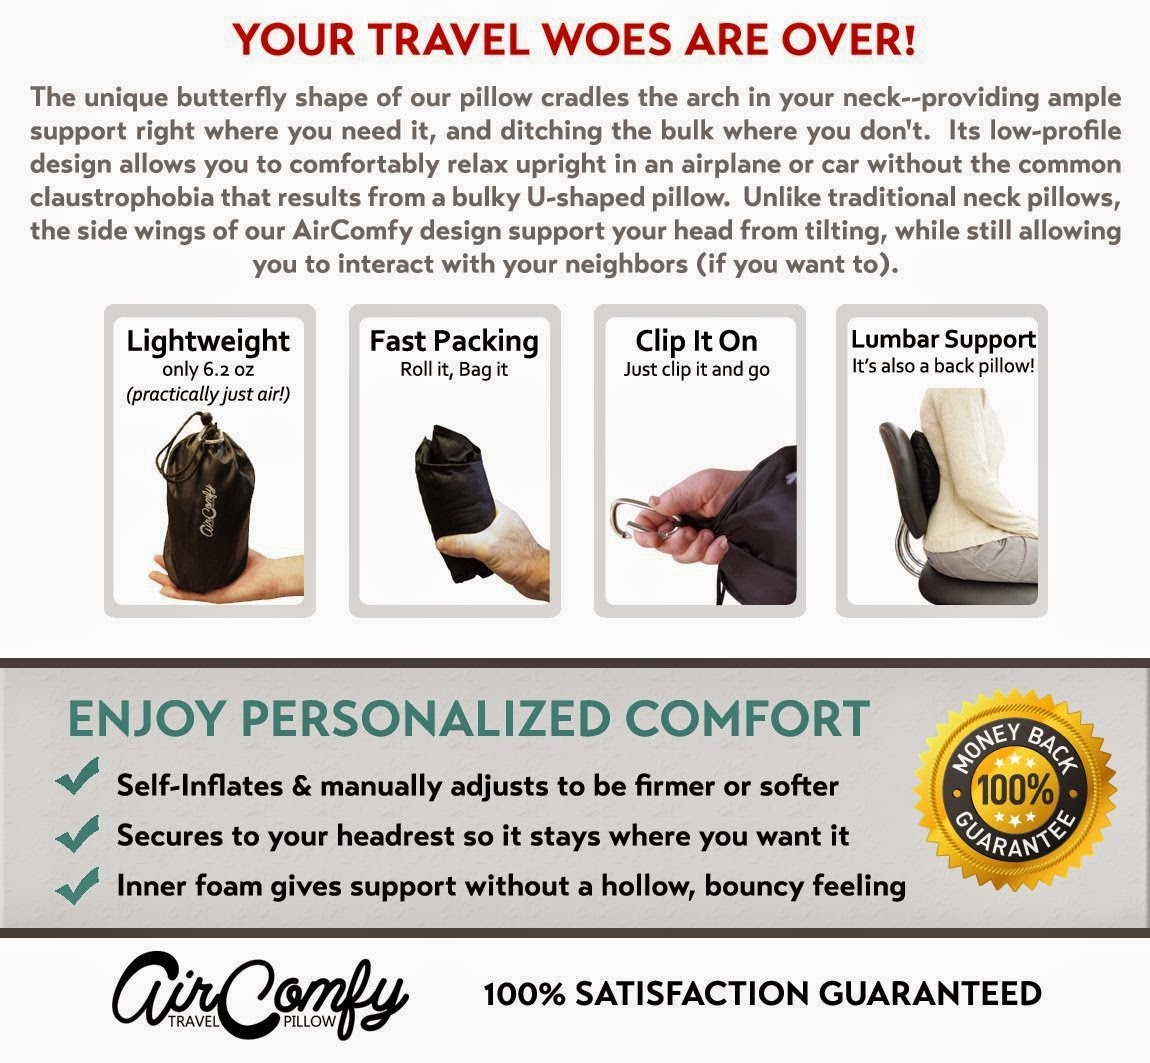 The AirComfy Travel Pillow